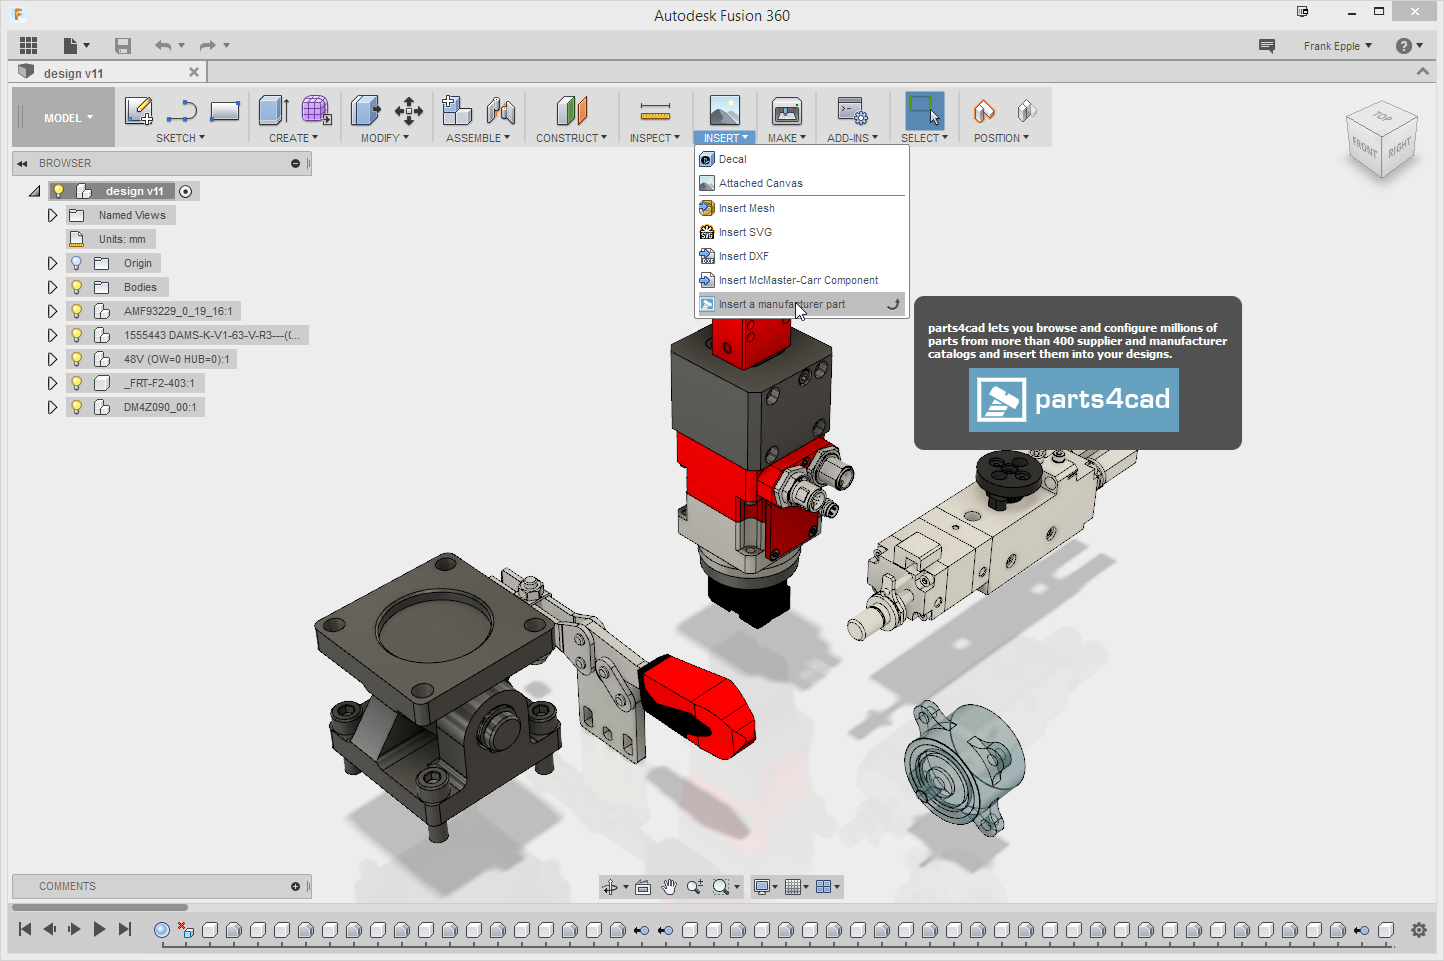 parts4cad in Autodesk Fusion 360